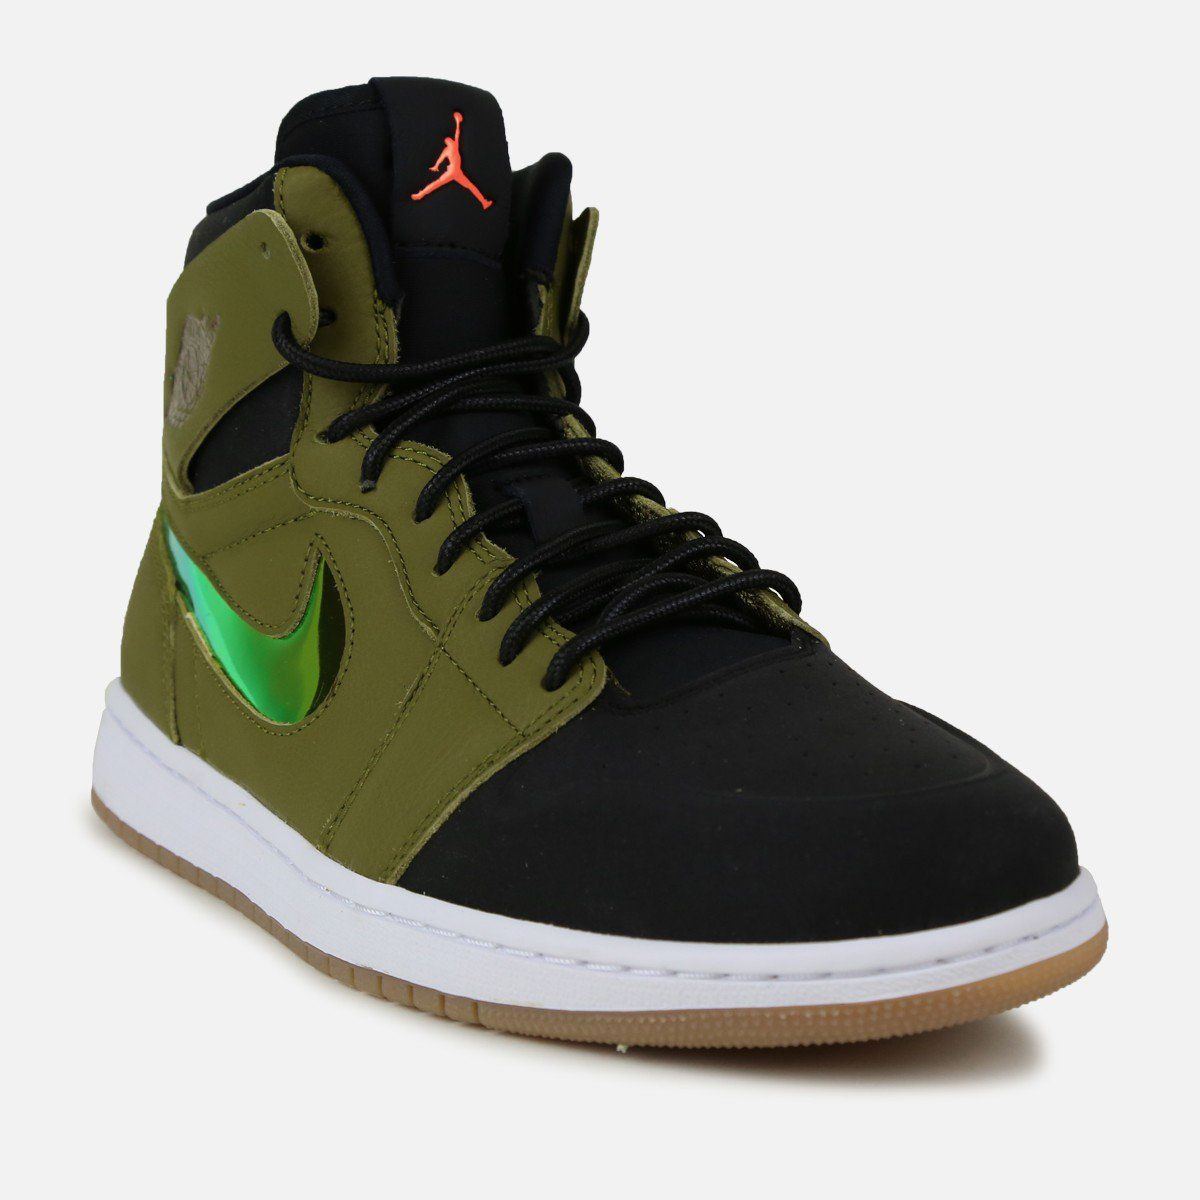 reputable site a9441 33b8a ... sale air jordan 1 high nouveau militia green new images air 23 air  jordan release dates